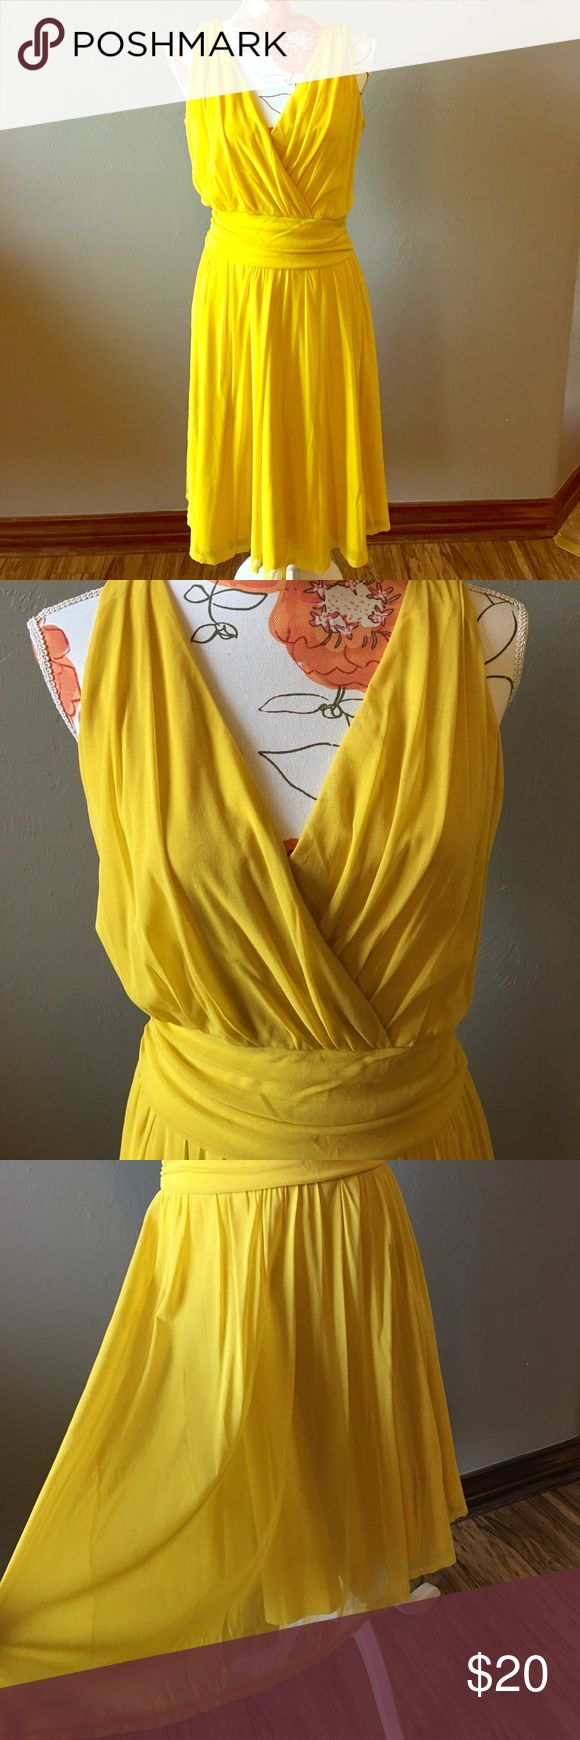 Mustard yellow dress Size 12 Lovely mustard dress with flattering waist and feminine style. Wore a few times and I got so many compliments! Soft gauzy material with a little stretch. Fully lined. Newport News Dresses